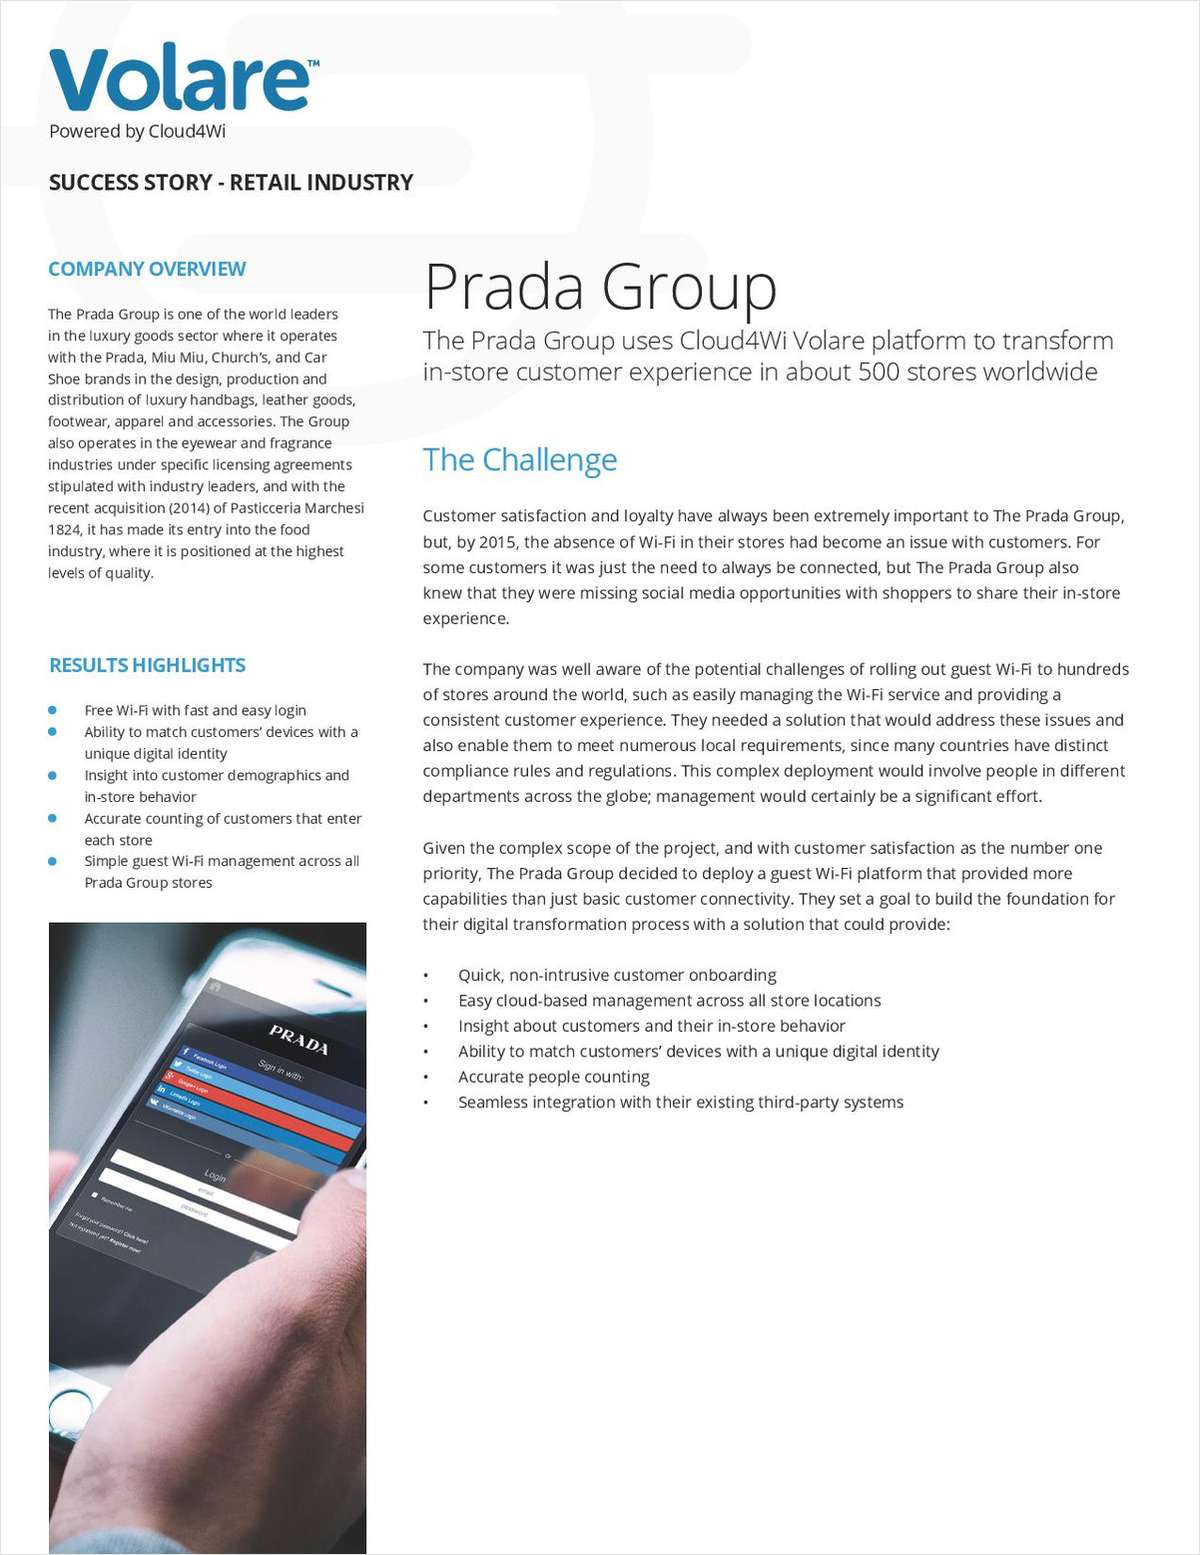 Revolutionizing In-Store Customer Experience: Prada Group Success Story